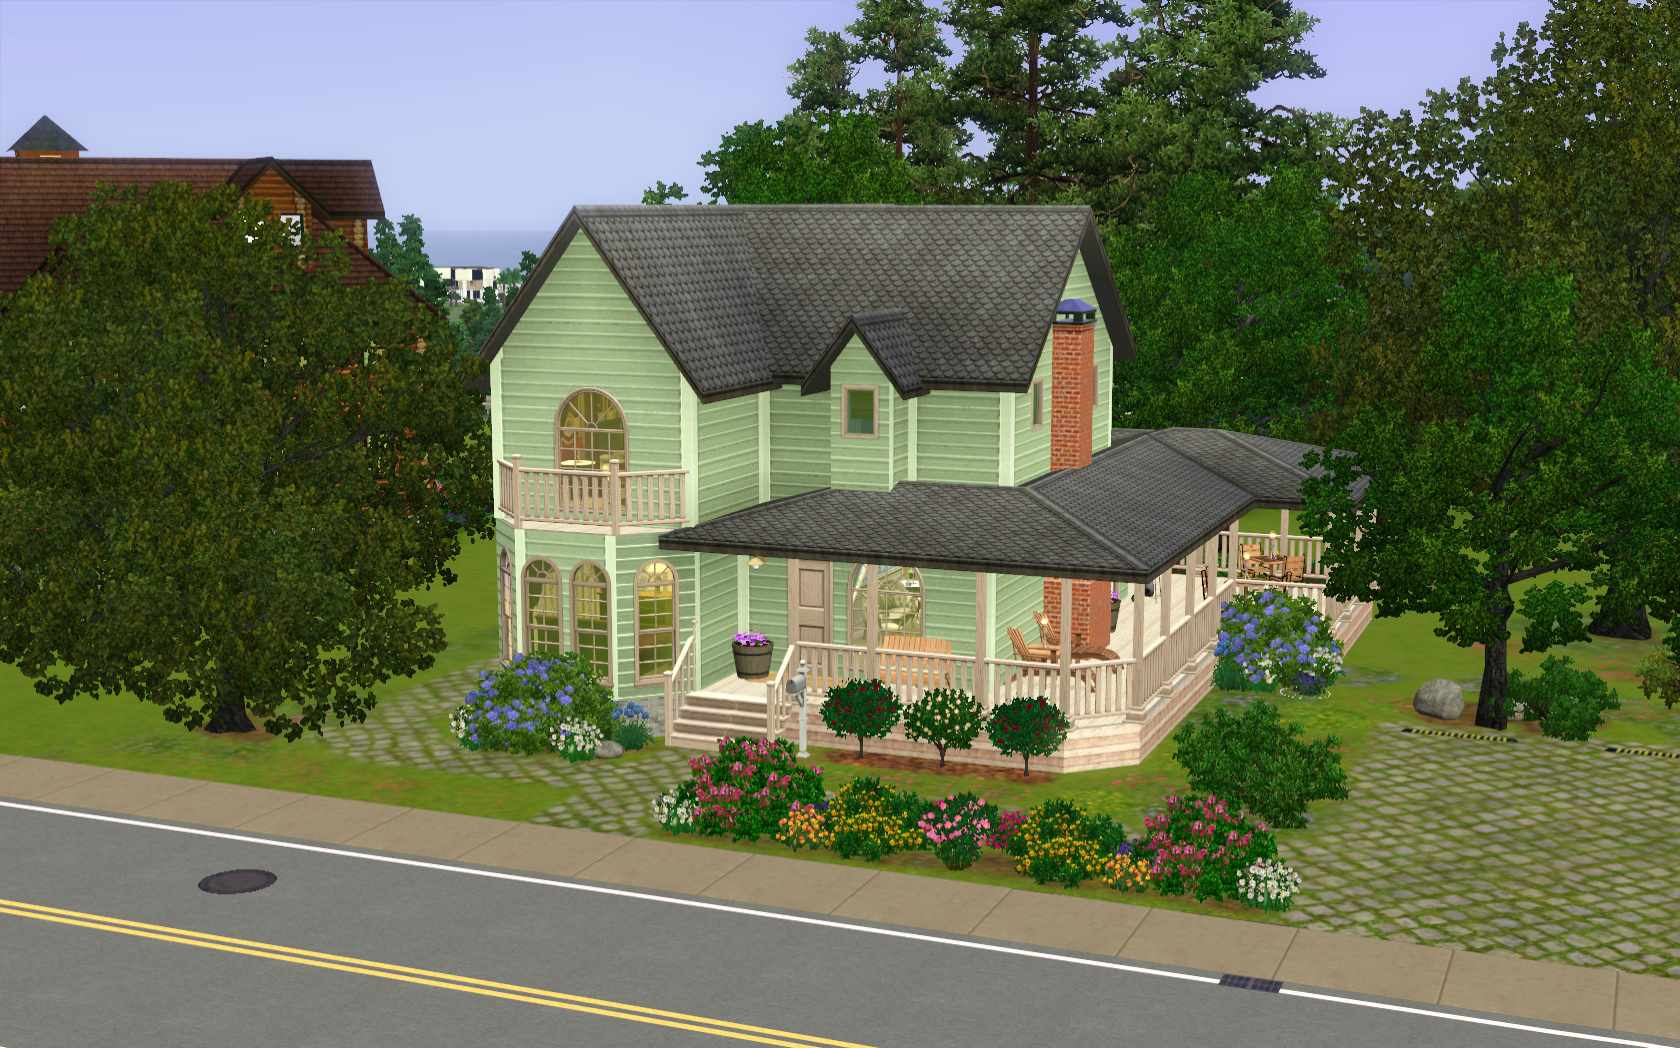 Awesome sims 3 ideas for houses pictures house plans 61961 for Best house designs sims 3